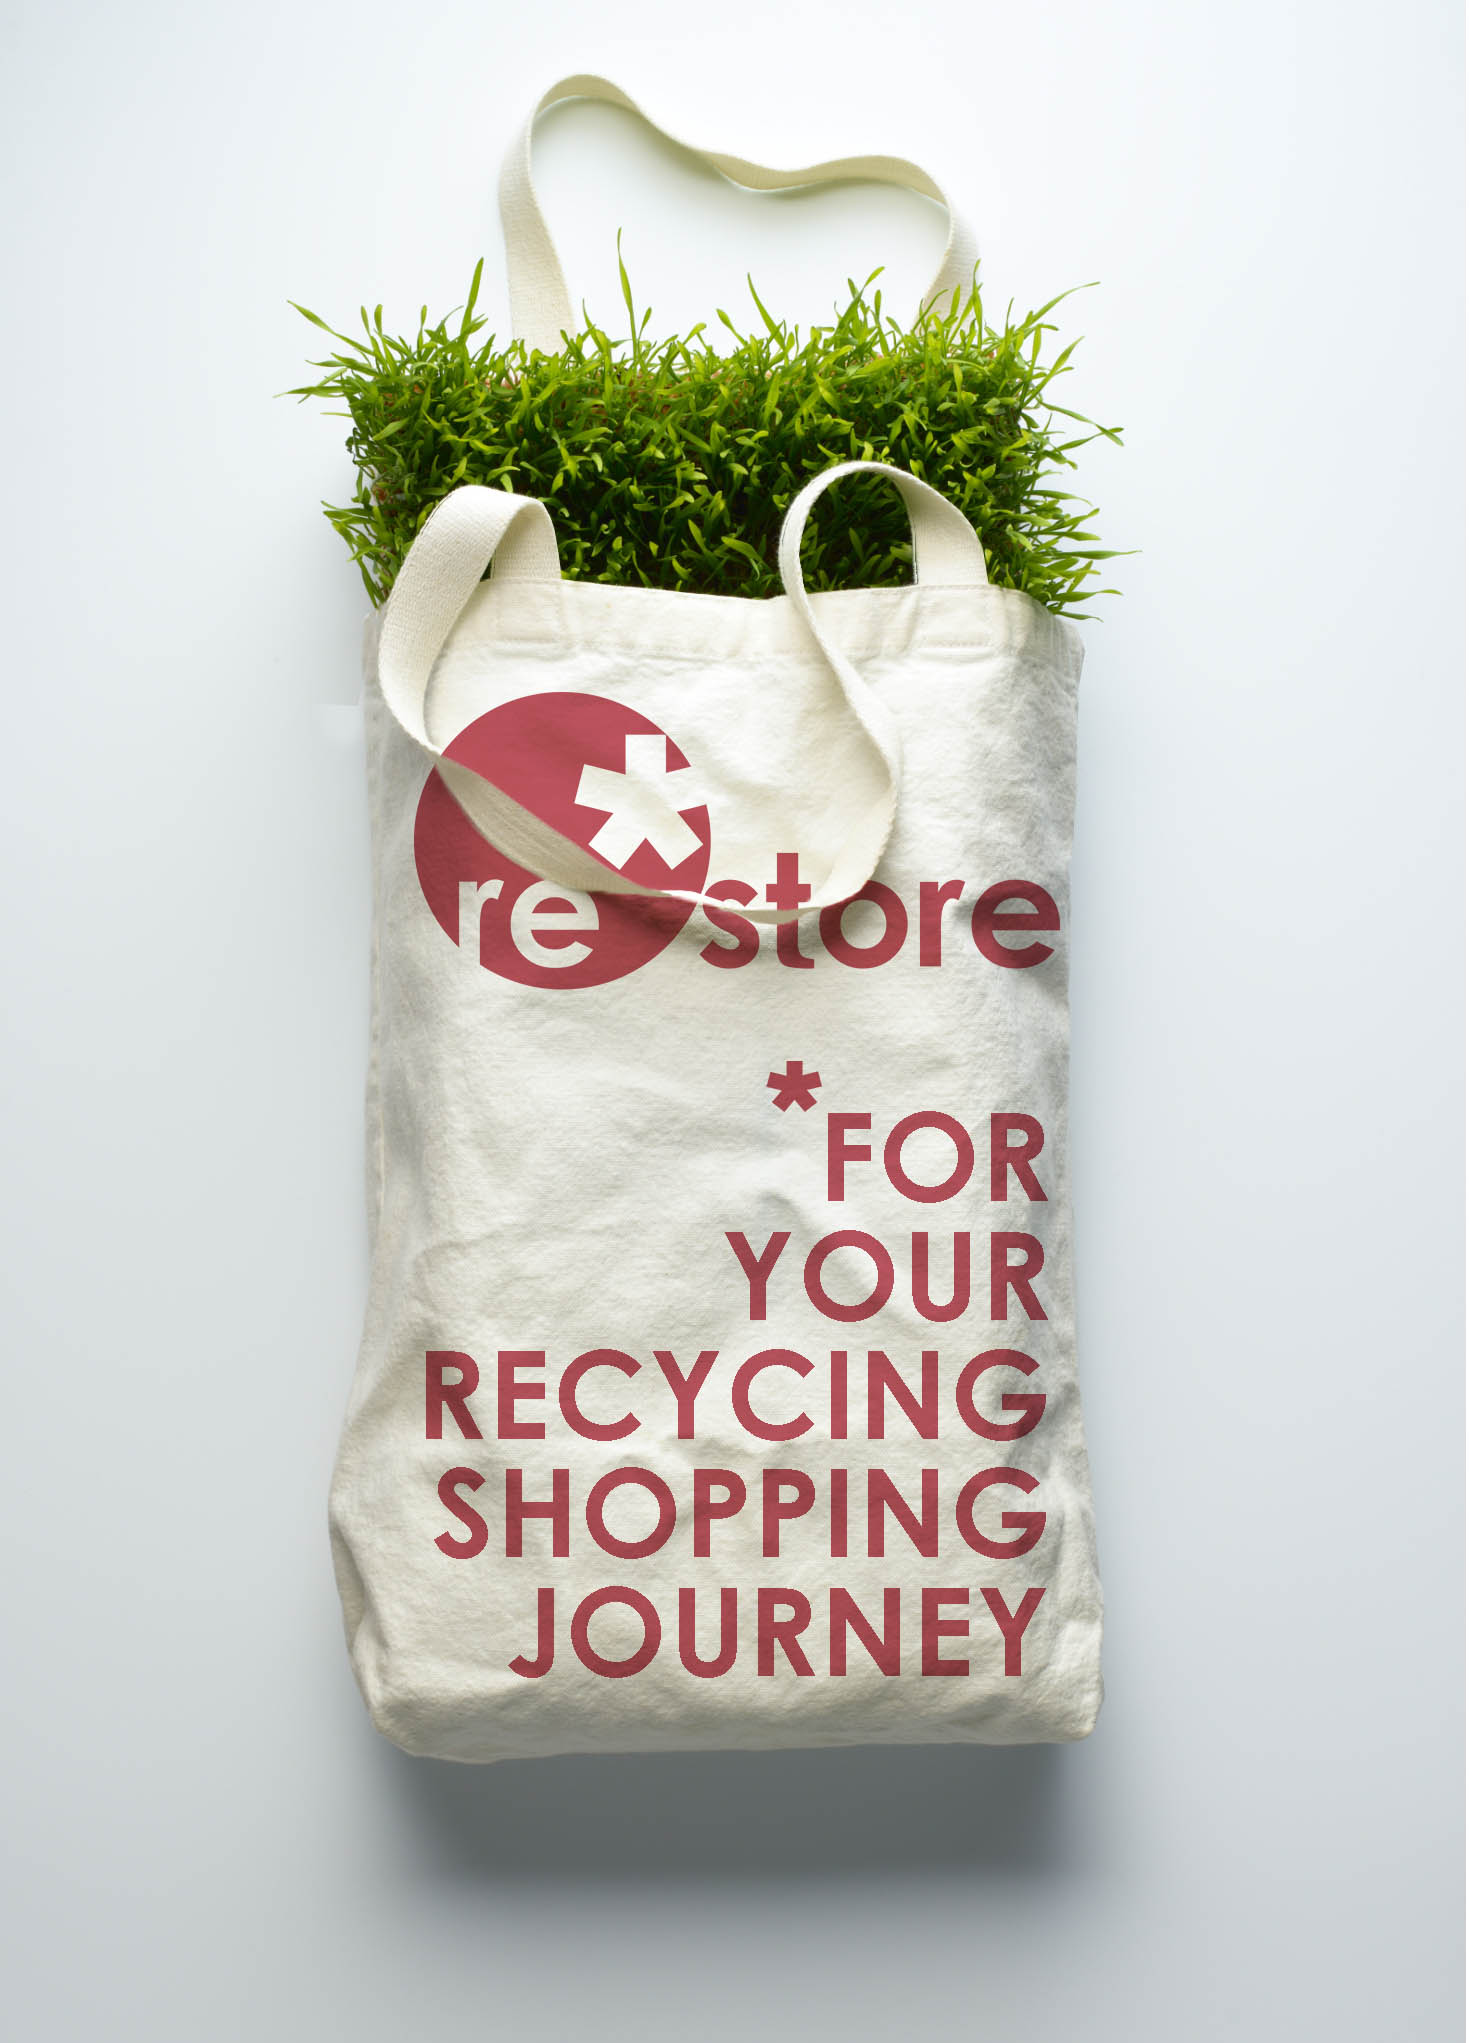 Brand launch and teaser campaign for Restore